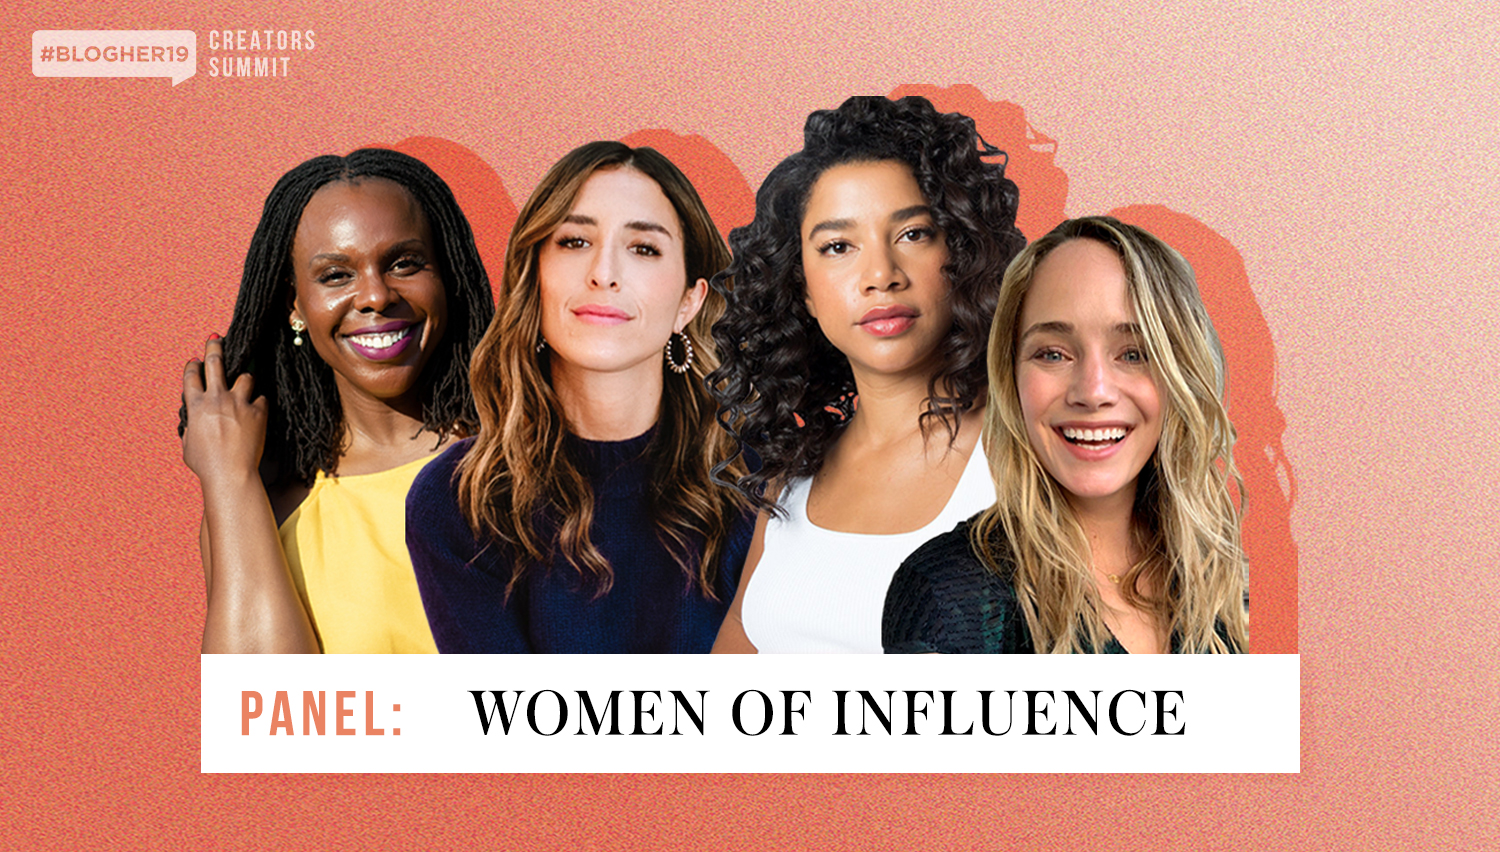 learn how to optimize your business from the women of influence - In this session at #BlogHer19 Creators Summit, top influencers Grace Atwood, Hannah Bronfman, Michaela Podolsky and CeCe Olisa will share their best practices for scaling your business from establishing multiple revenue streams to creating content with the greatest lifespan potential.